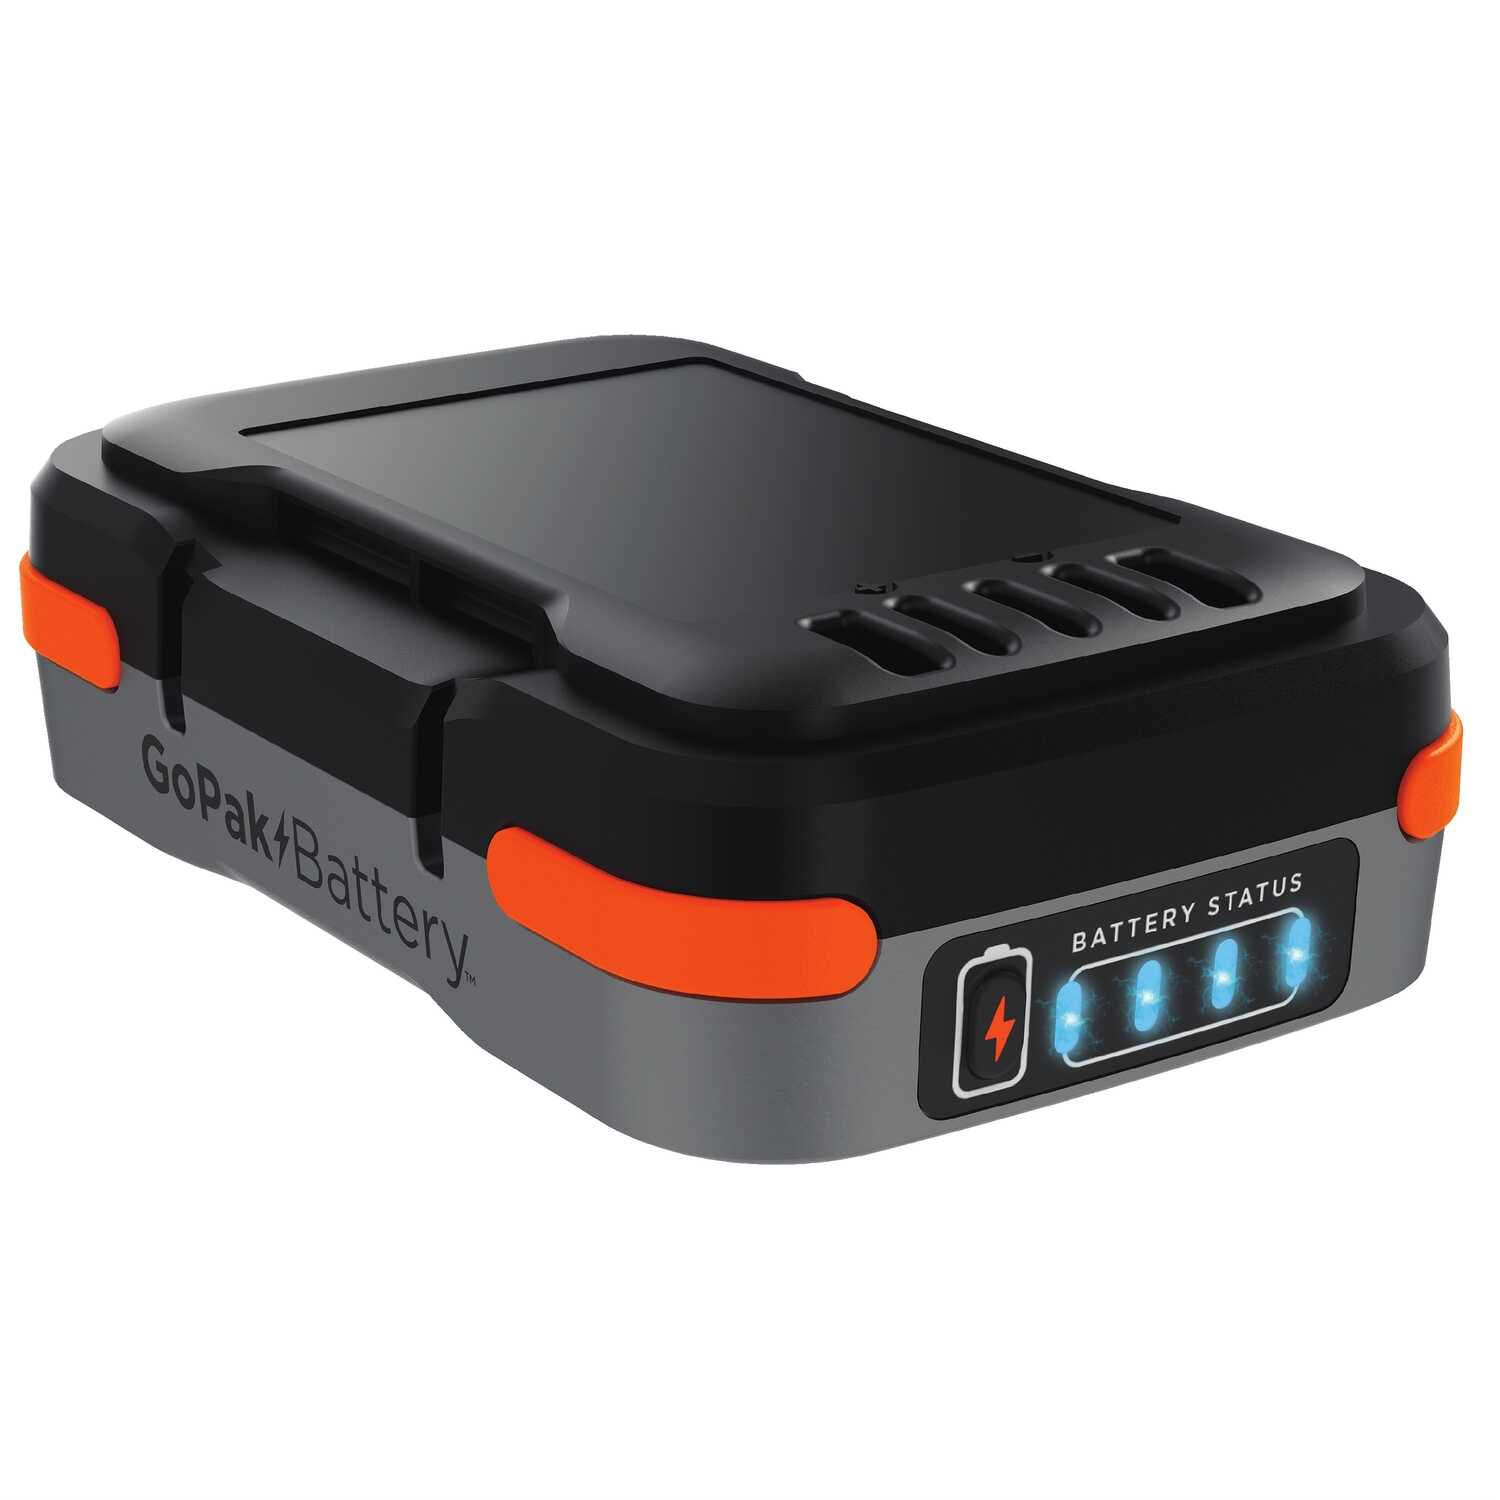 Black and Decker  GoPak  12 volt 1.5 Ah Lithium-Ion  Battery and Charger  1 pc.